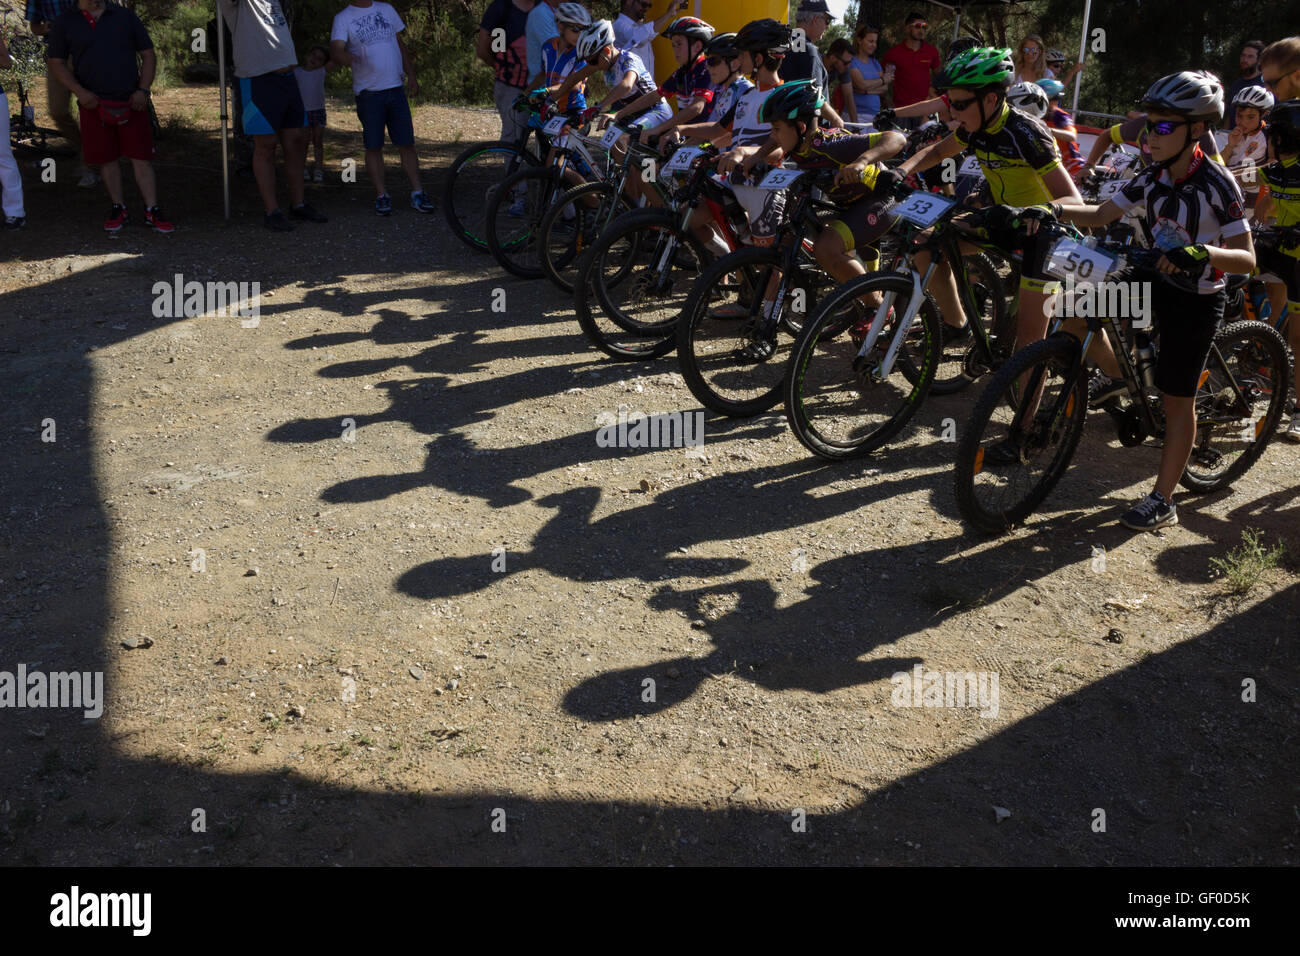 Racer's shadows waiting at the starting point. BIKE and FUN CUP, Seix sou (Seih Sou) forest, Summer 2016, Thessaloniki, - Stock Image